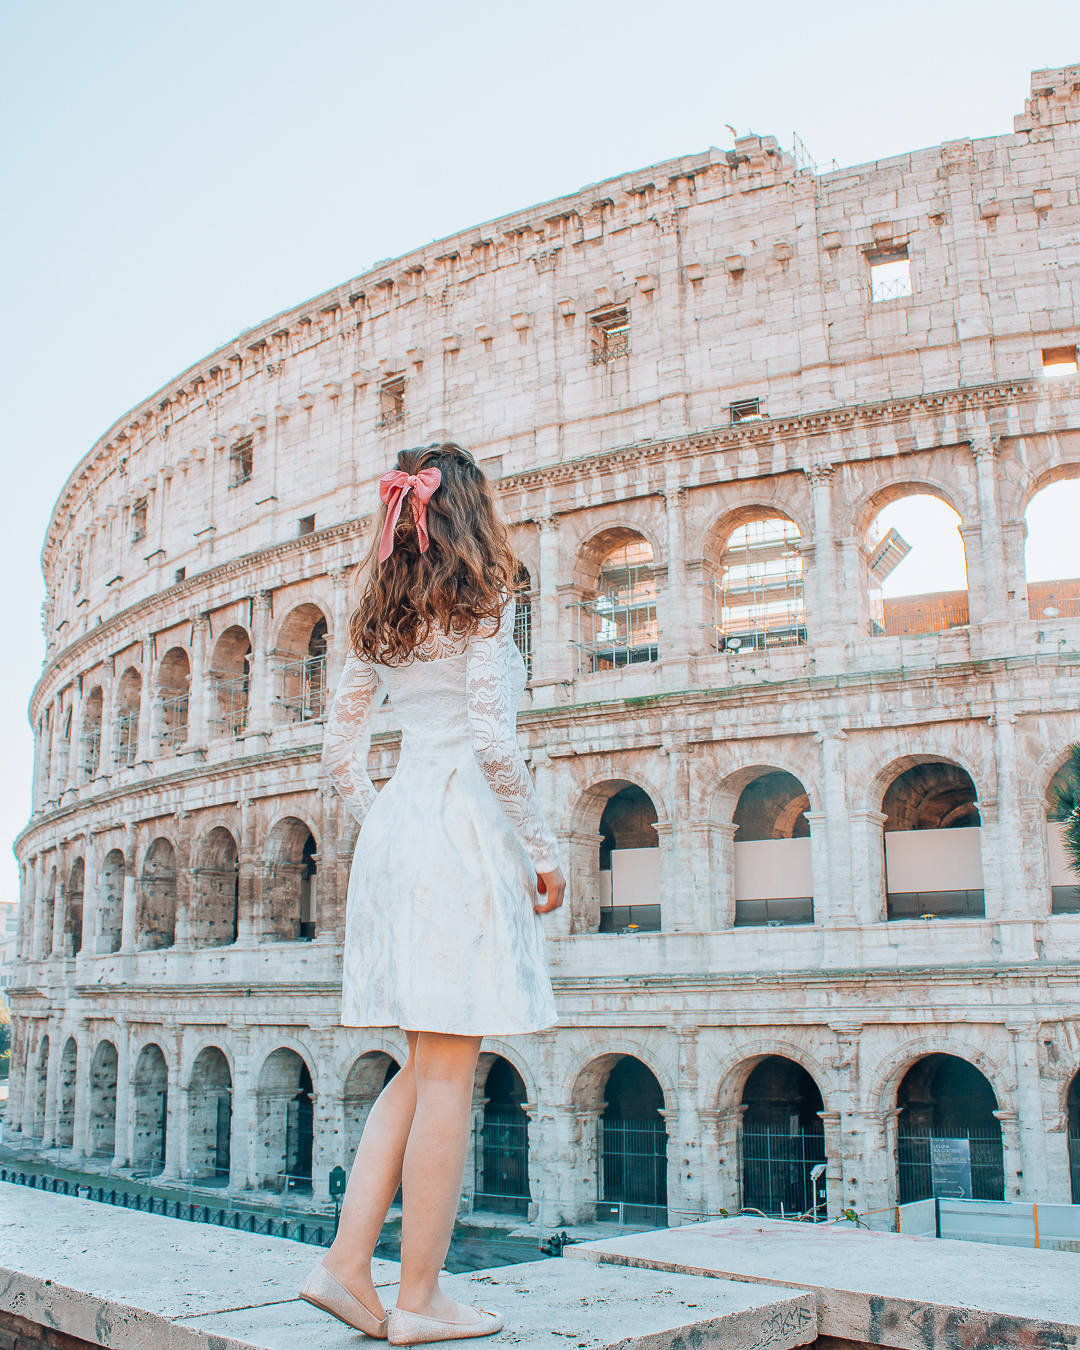 Girl in front of Colosseum